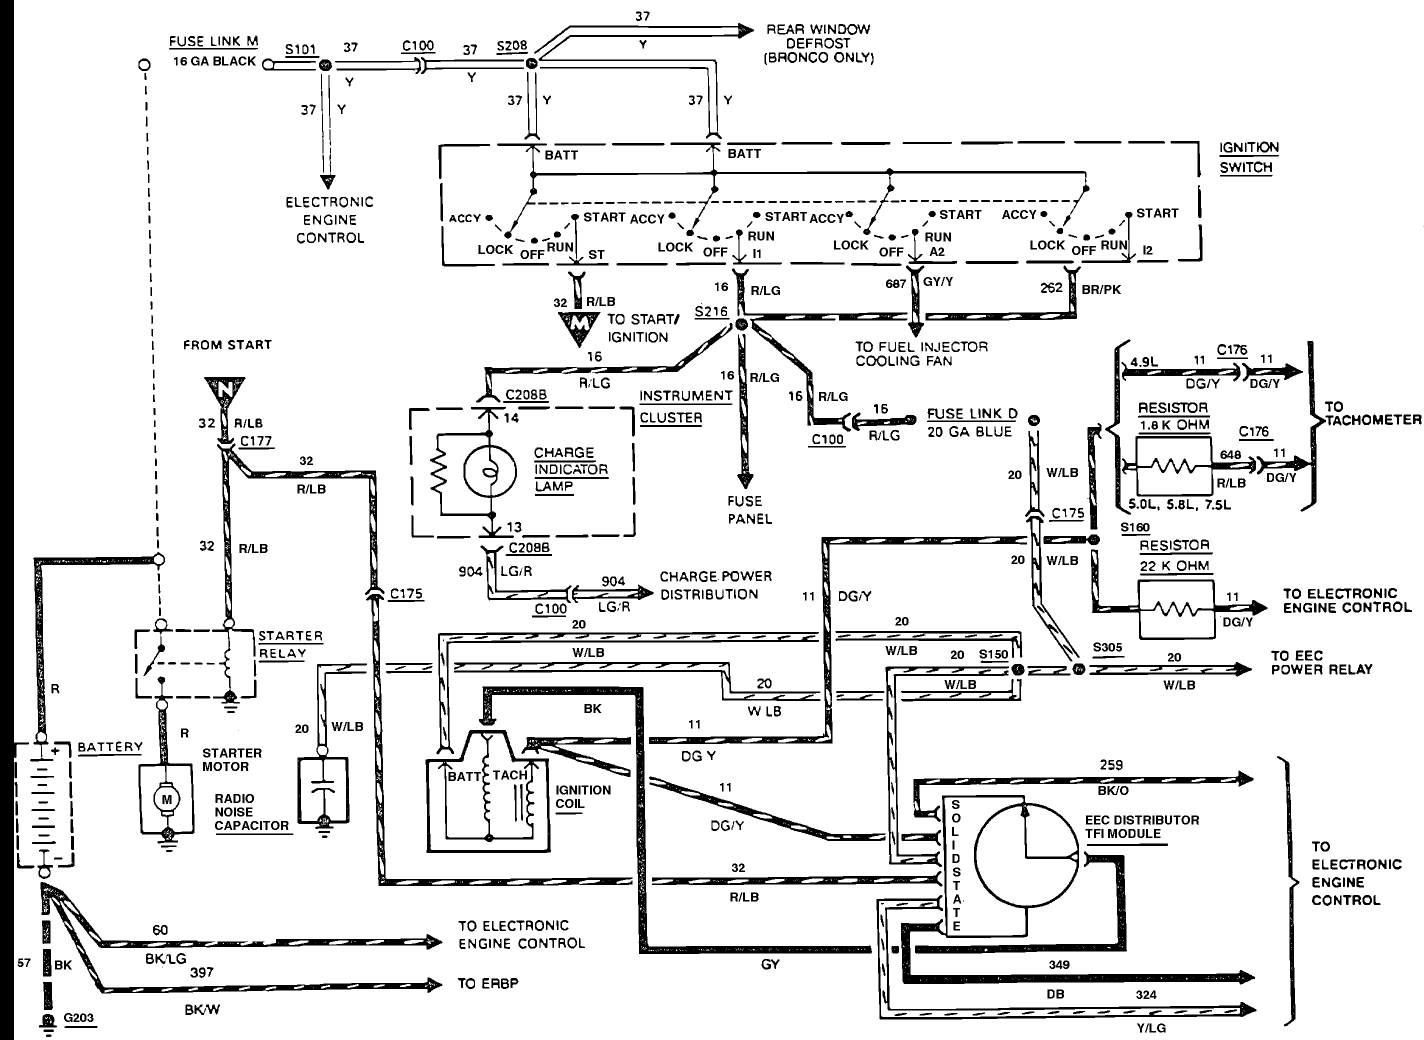 1989 Ford Alternator Wiring Diagram - Wiring Diagram  Ford Alternator Wiring Diagram on